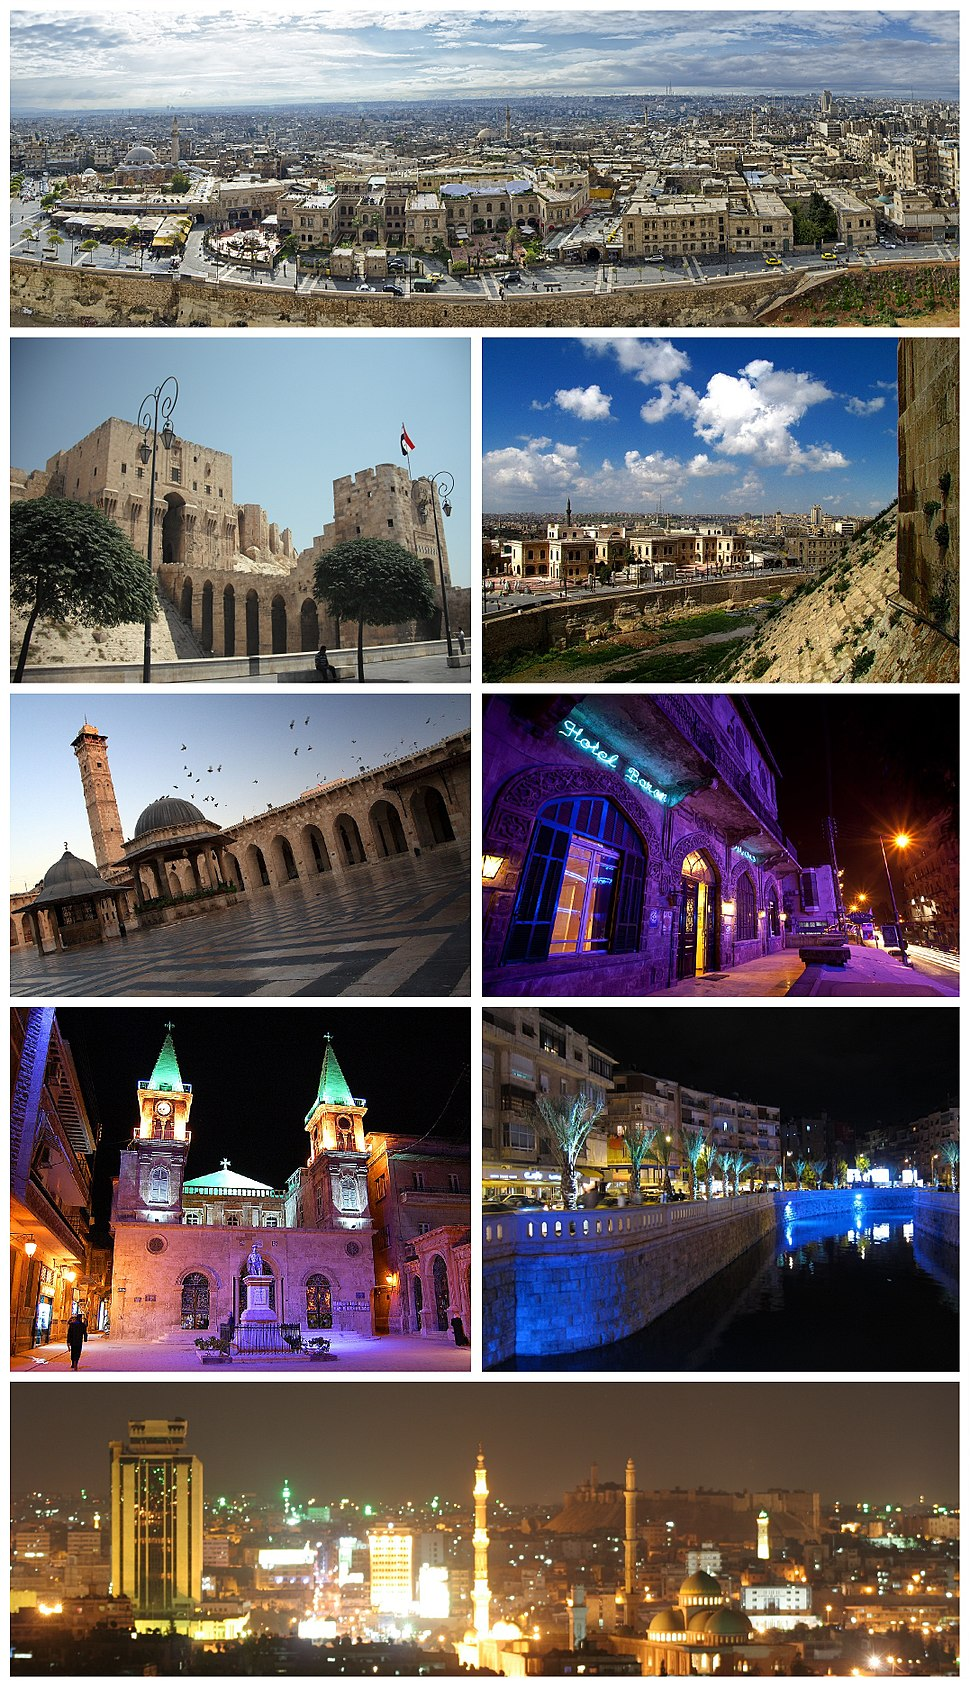 Ancient City of Aleppo Aleppo Citadel • The entrance to al-Madina Souq Great Mosque of Aleppo • Baron Hotel Saint Elijah Cathedral • Queiq River Panorama of Aleppo at night